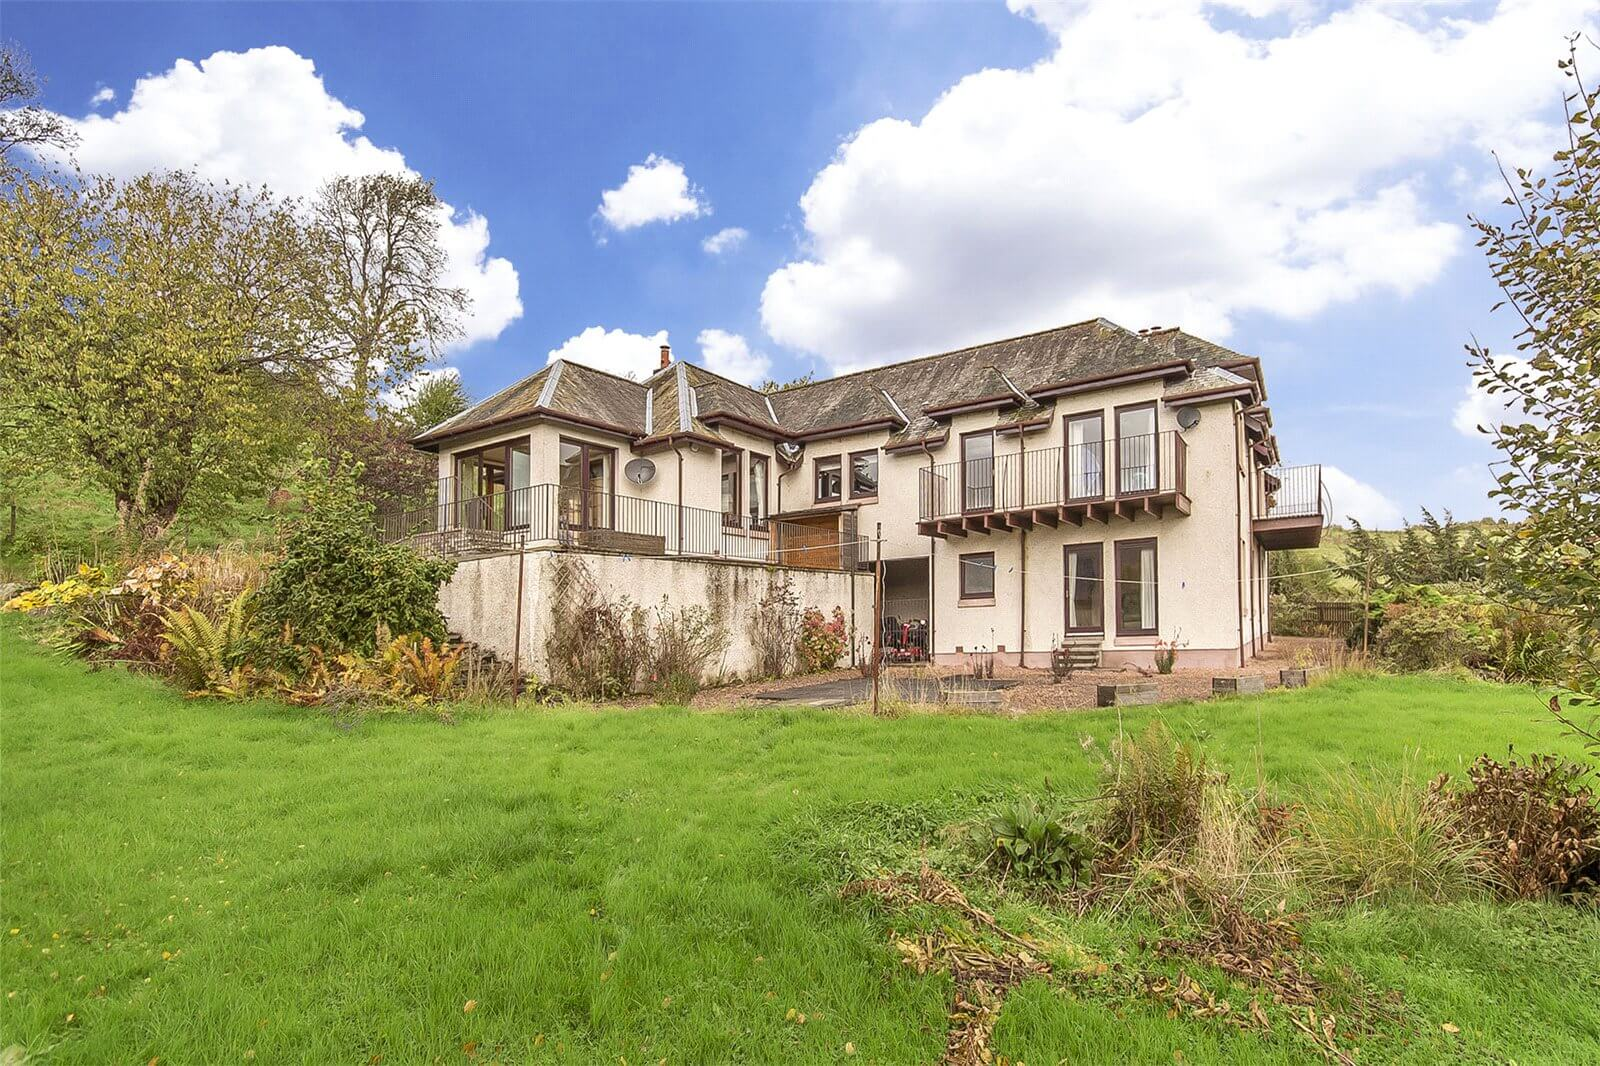 Our latest properties for sale and to let (18th October 2019)